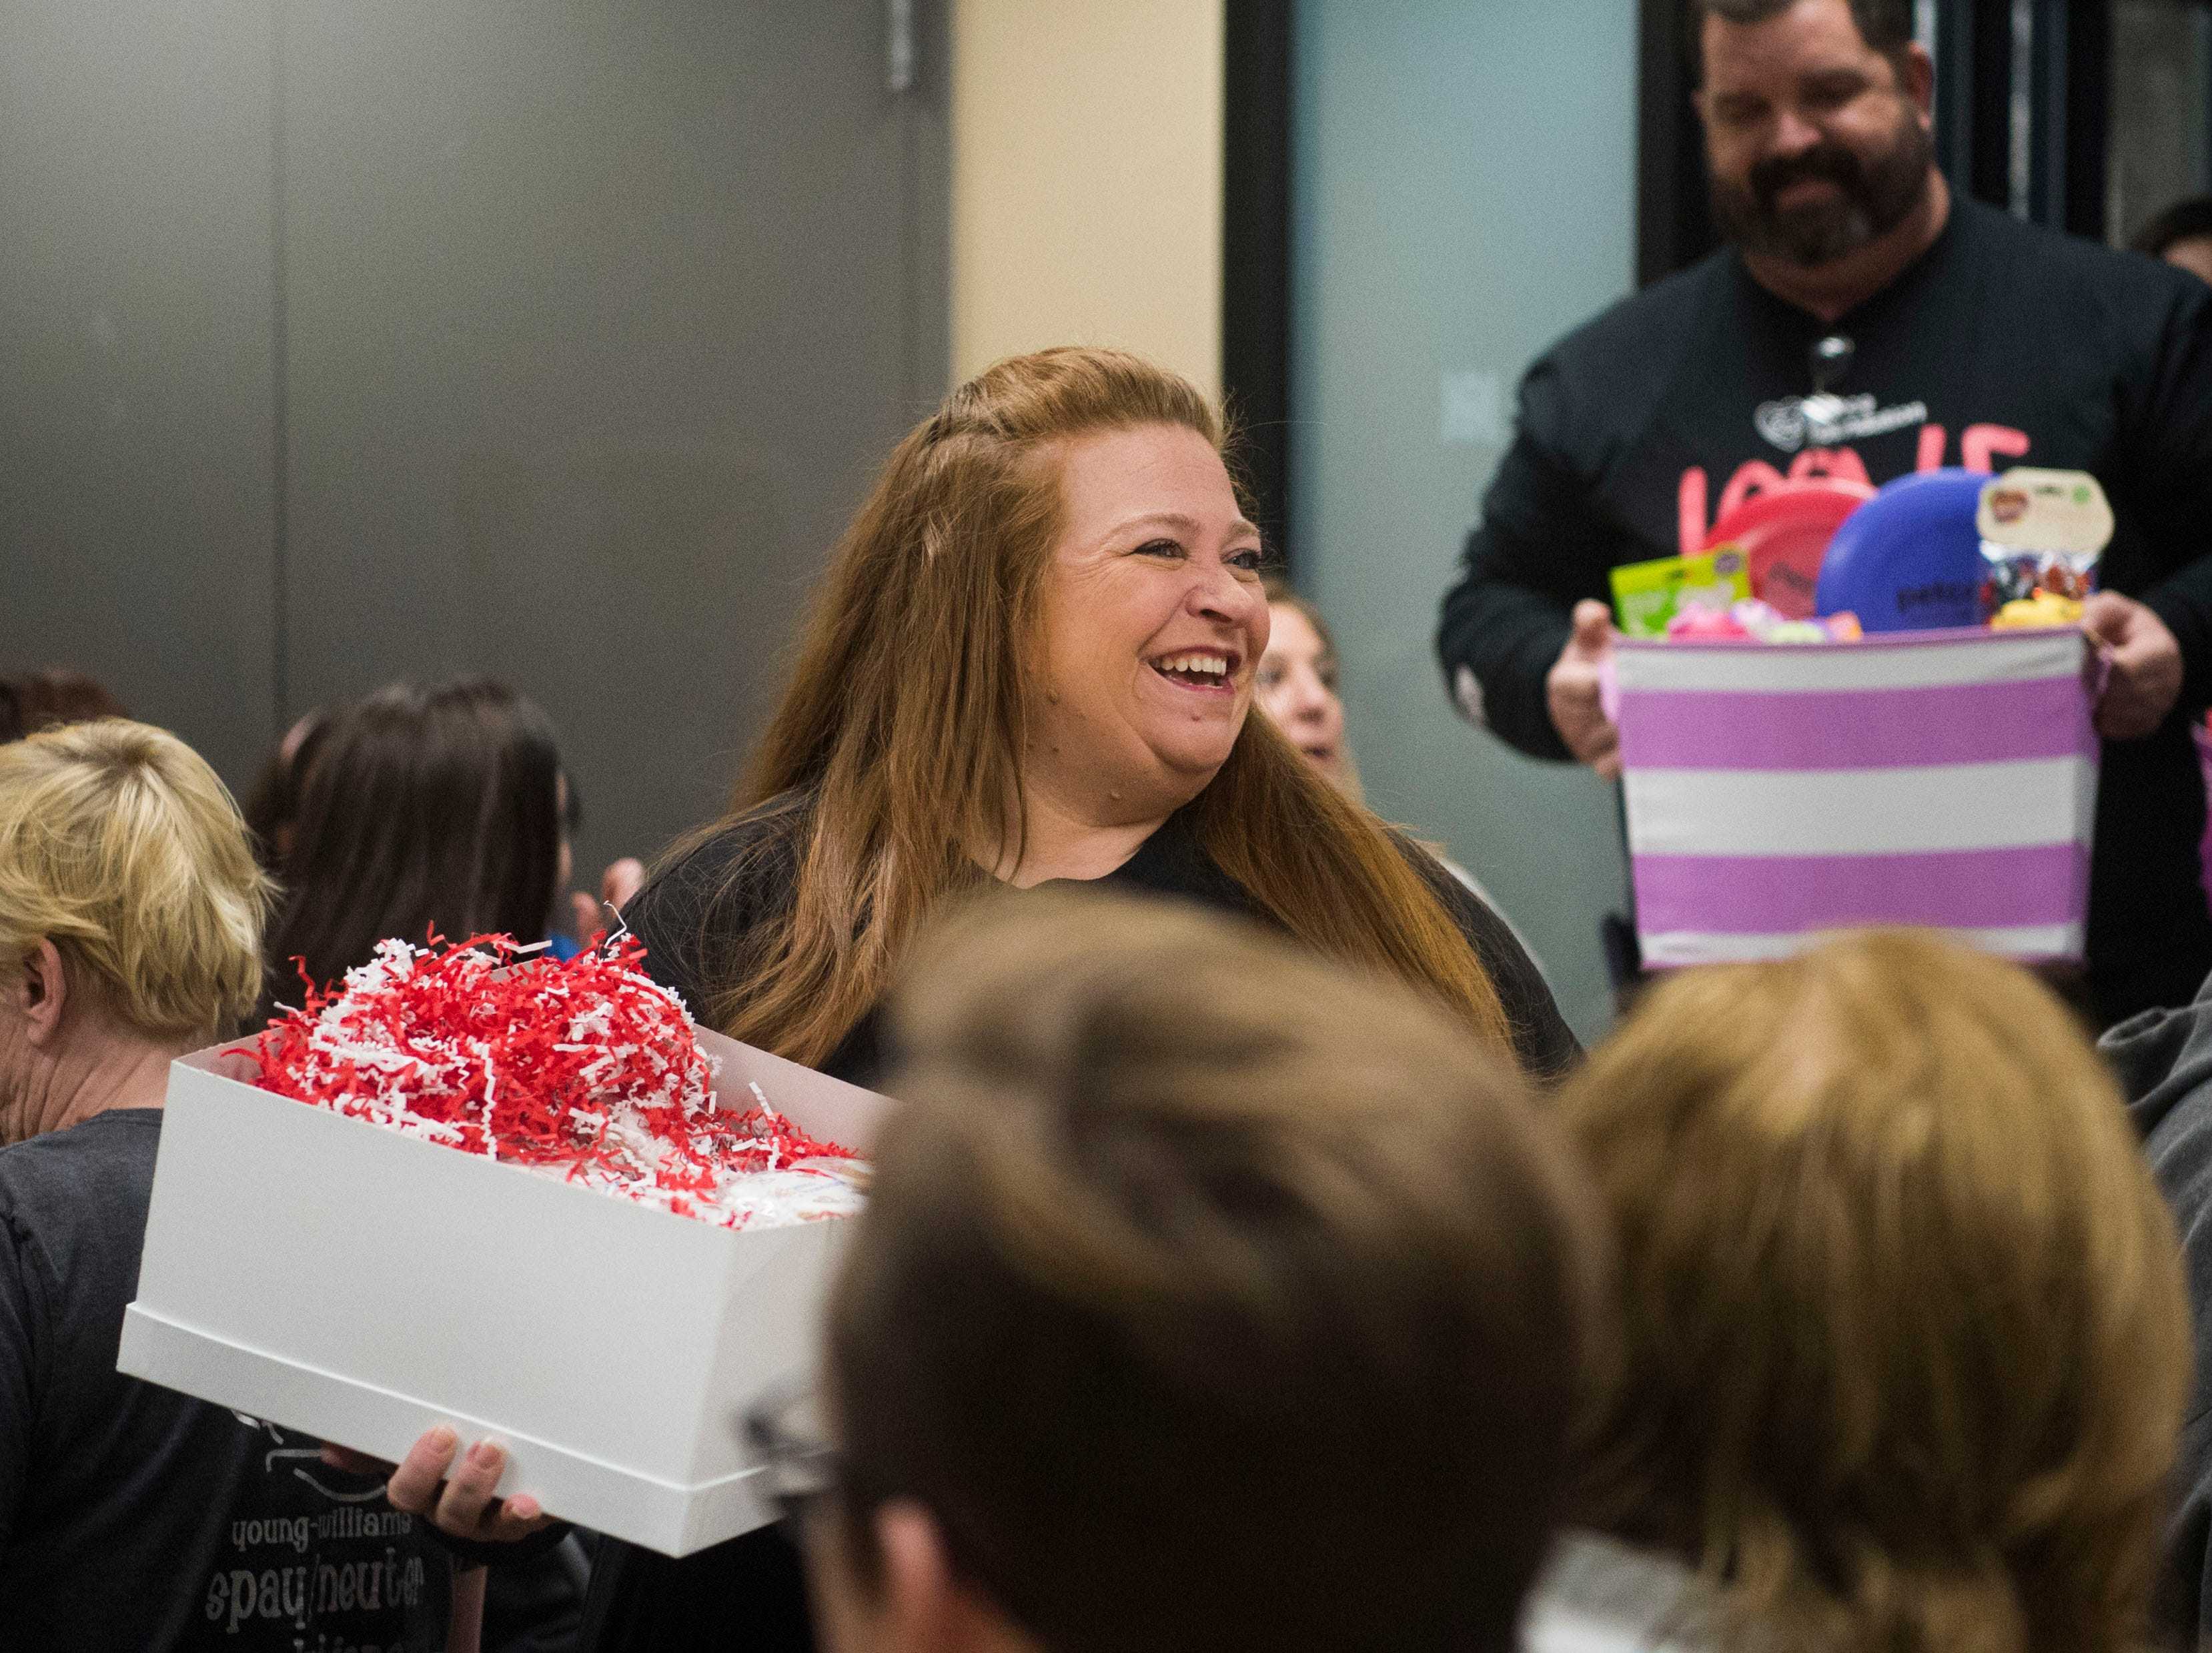 Wendy Fontaine, regional field program manager for the Petco Foundation, walks into a room of unexpecting employees at Young-Williams Animal Center in Knoxville Thursday, Feb. 14, 2019. The animal shelter received a surprise $750,000 grant from the Petco Foundation.Ê